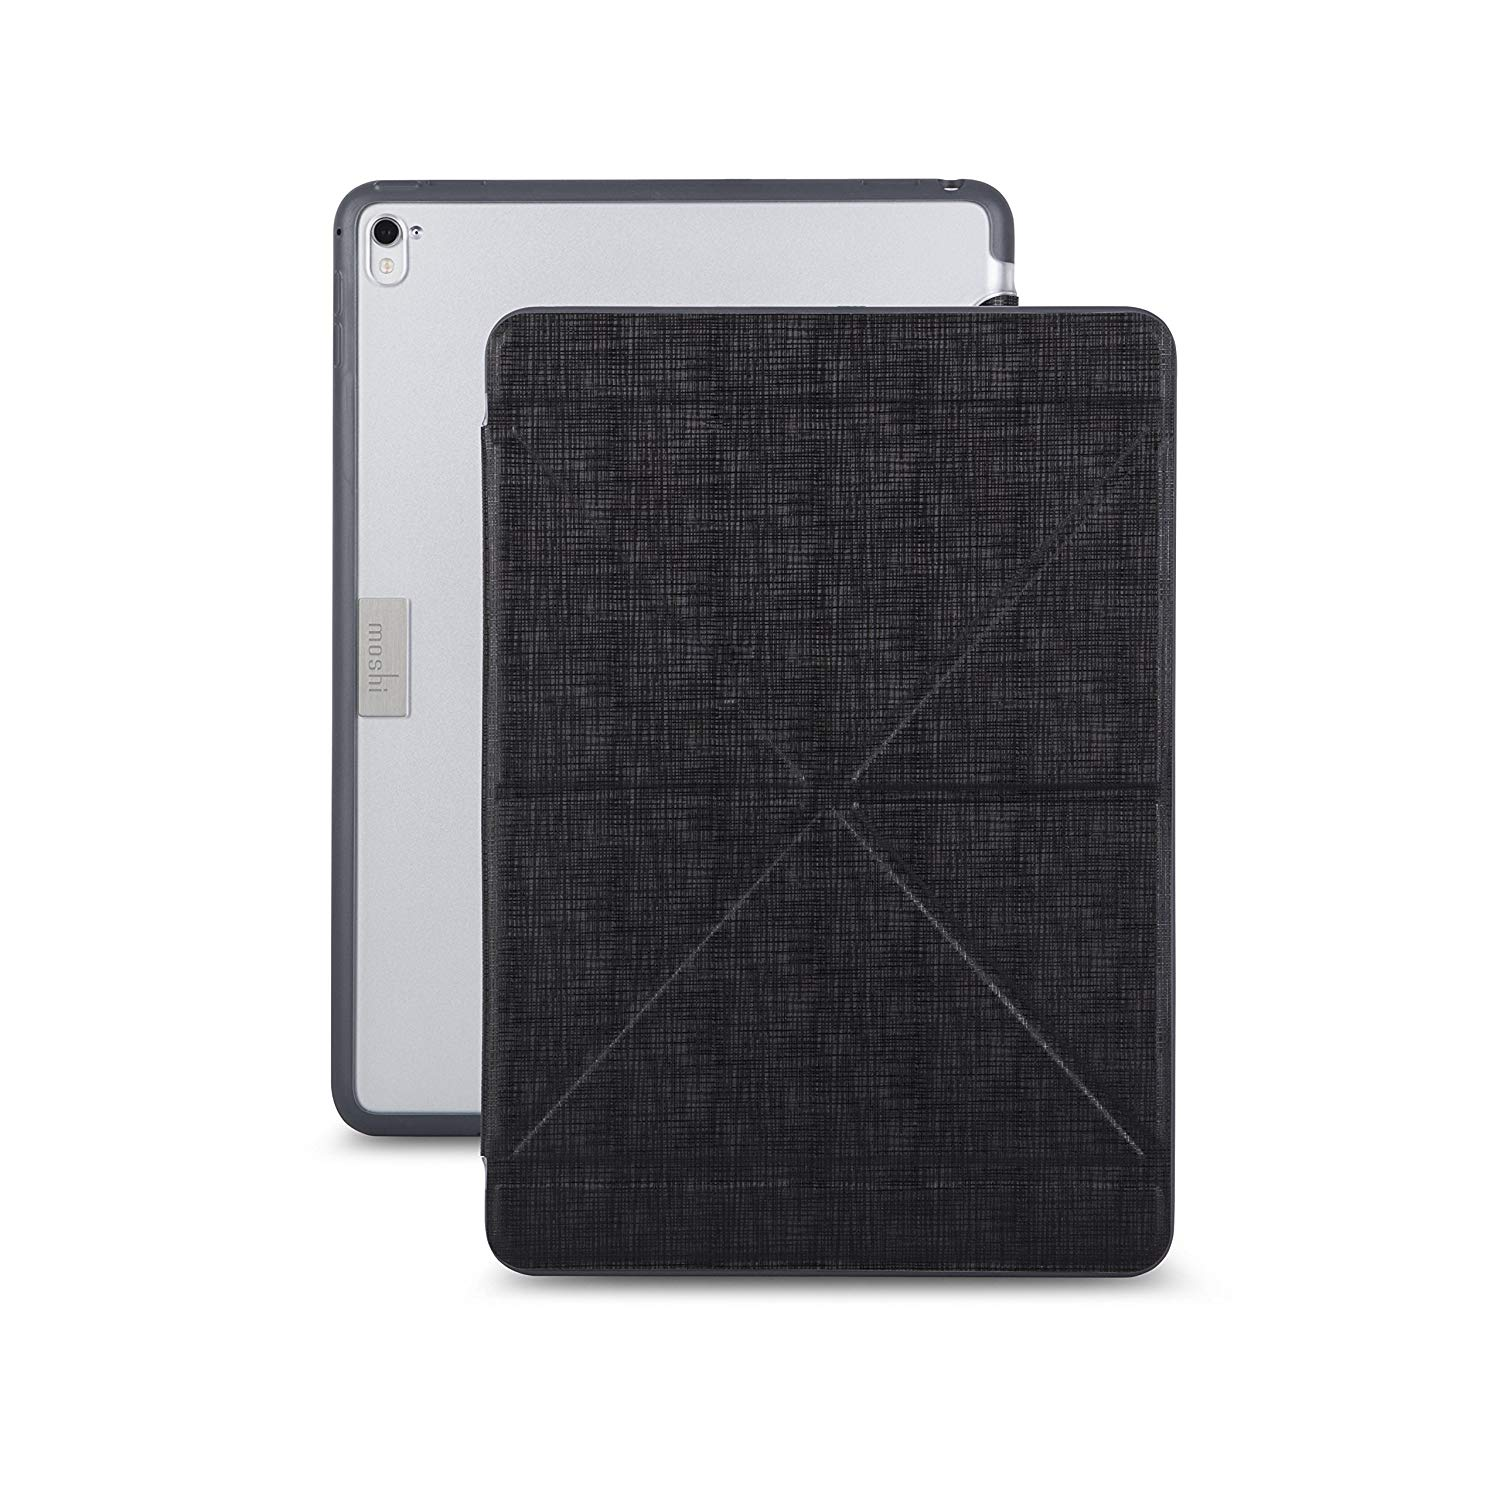 Moshi Versa Case for iPad 6th/5th Gen